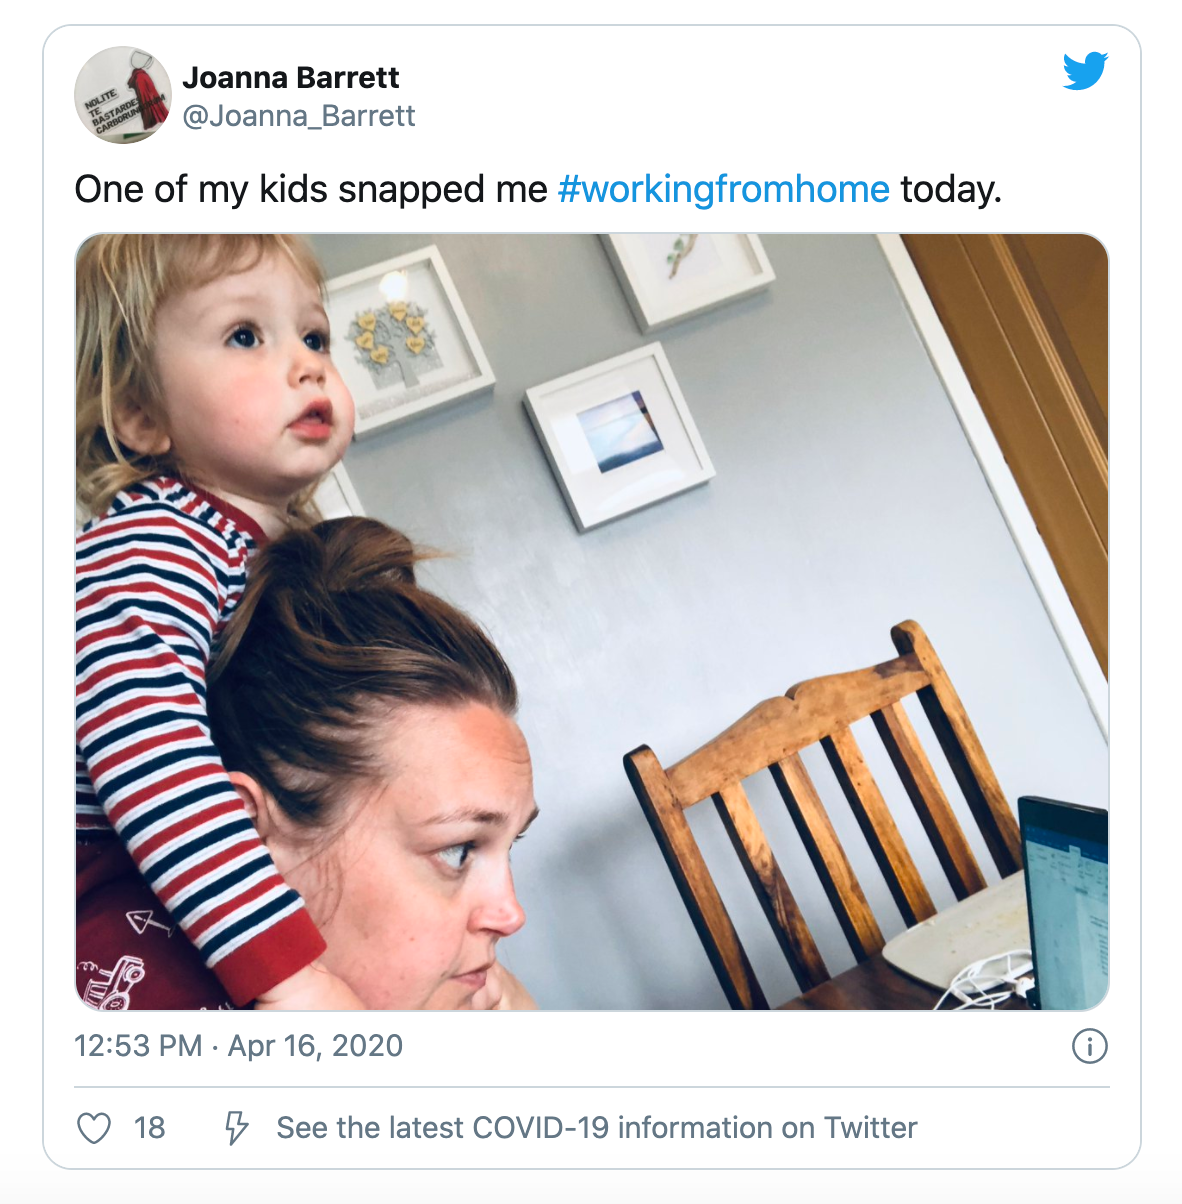 Tweet about working from home with kids